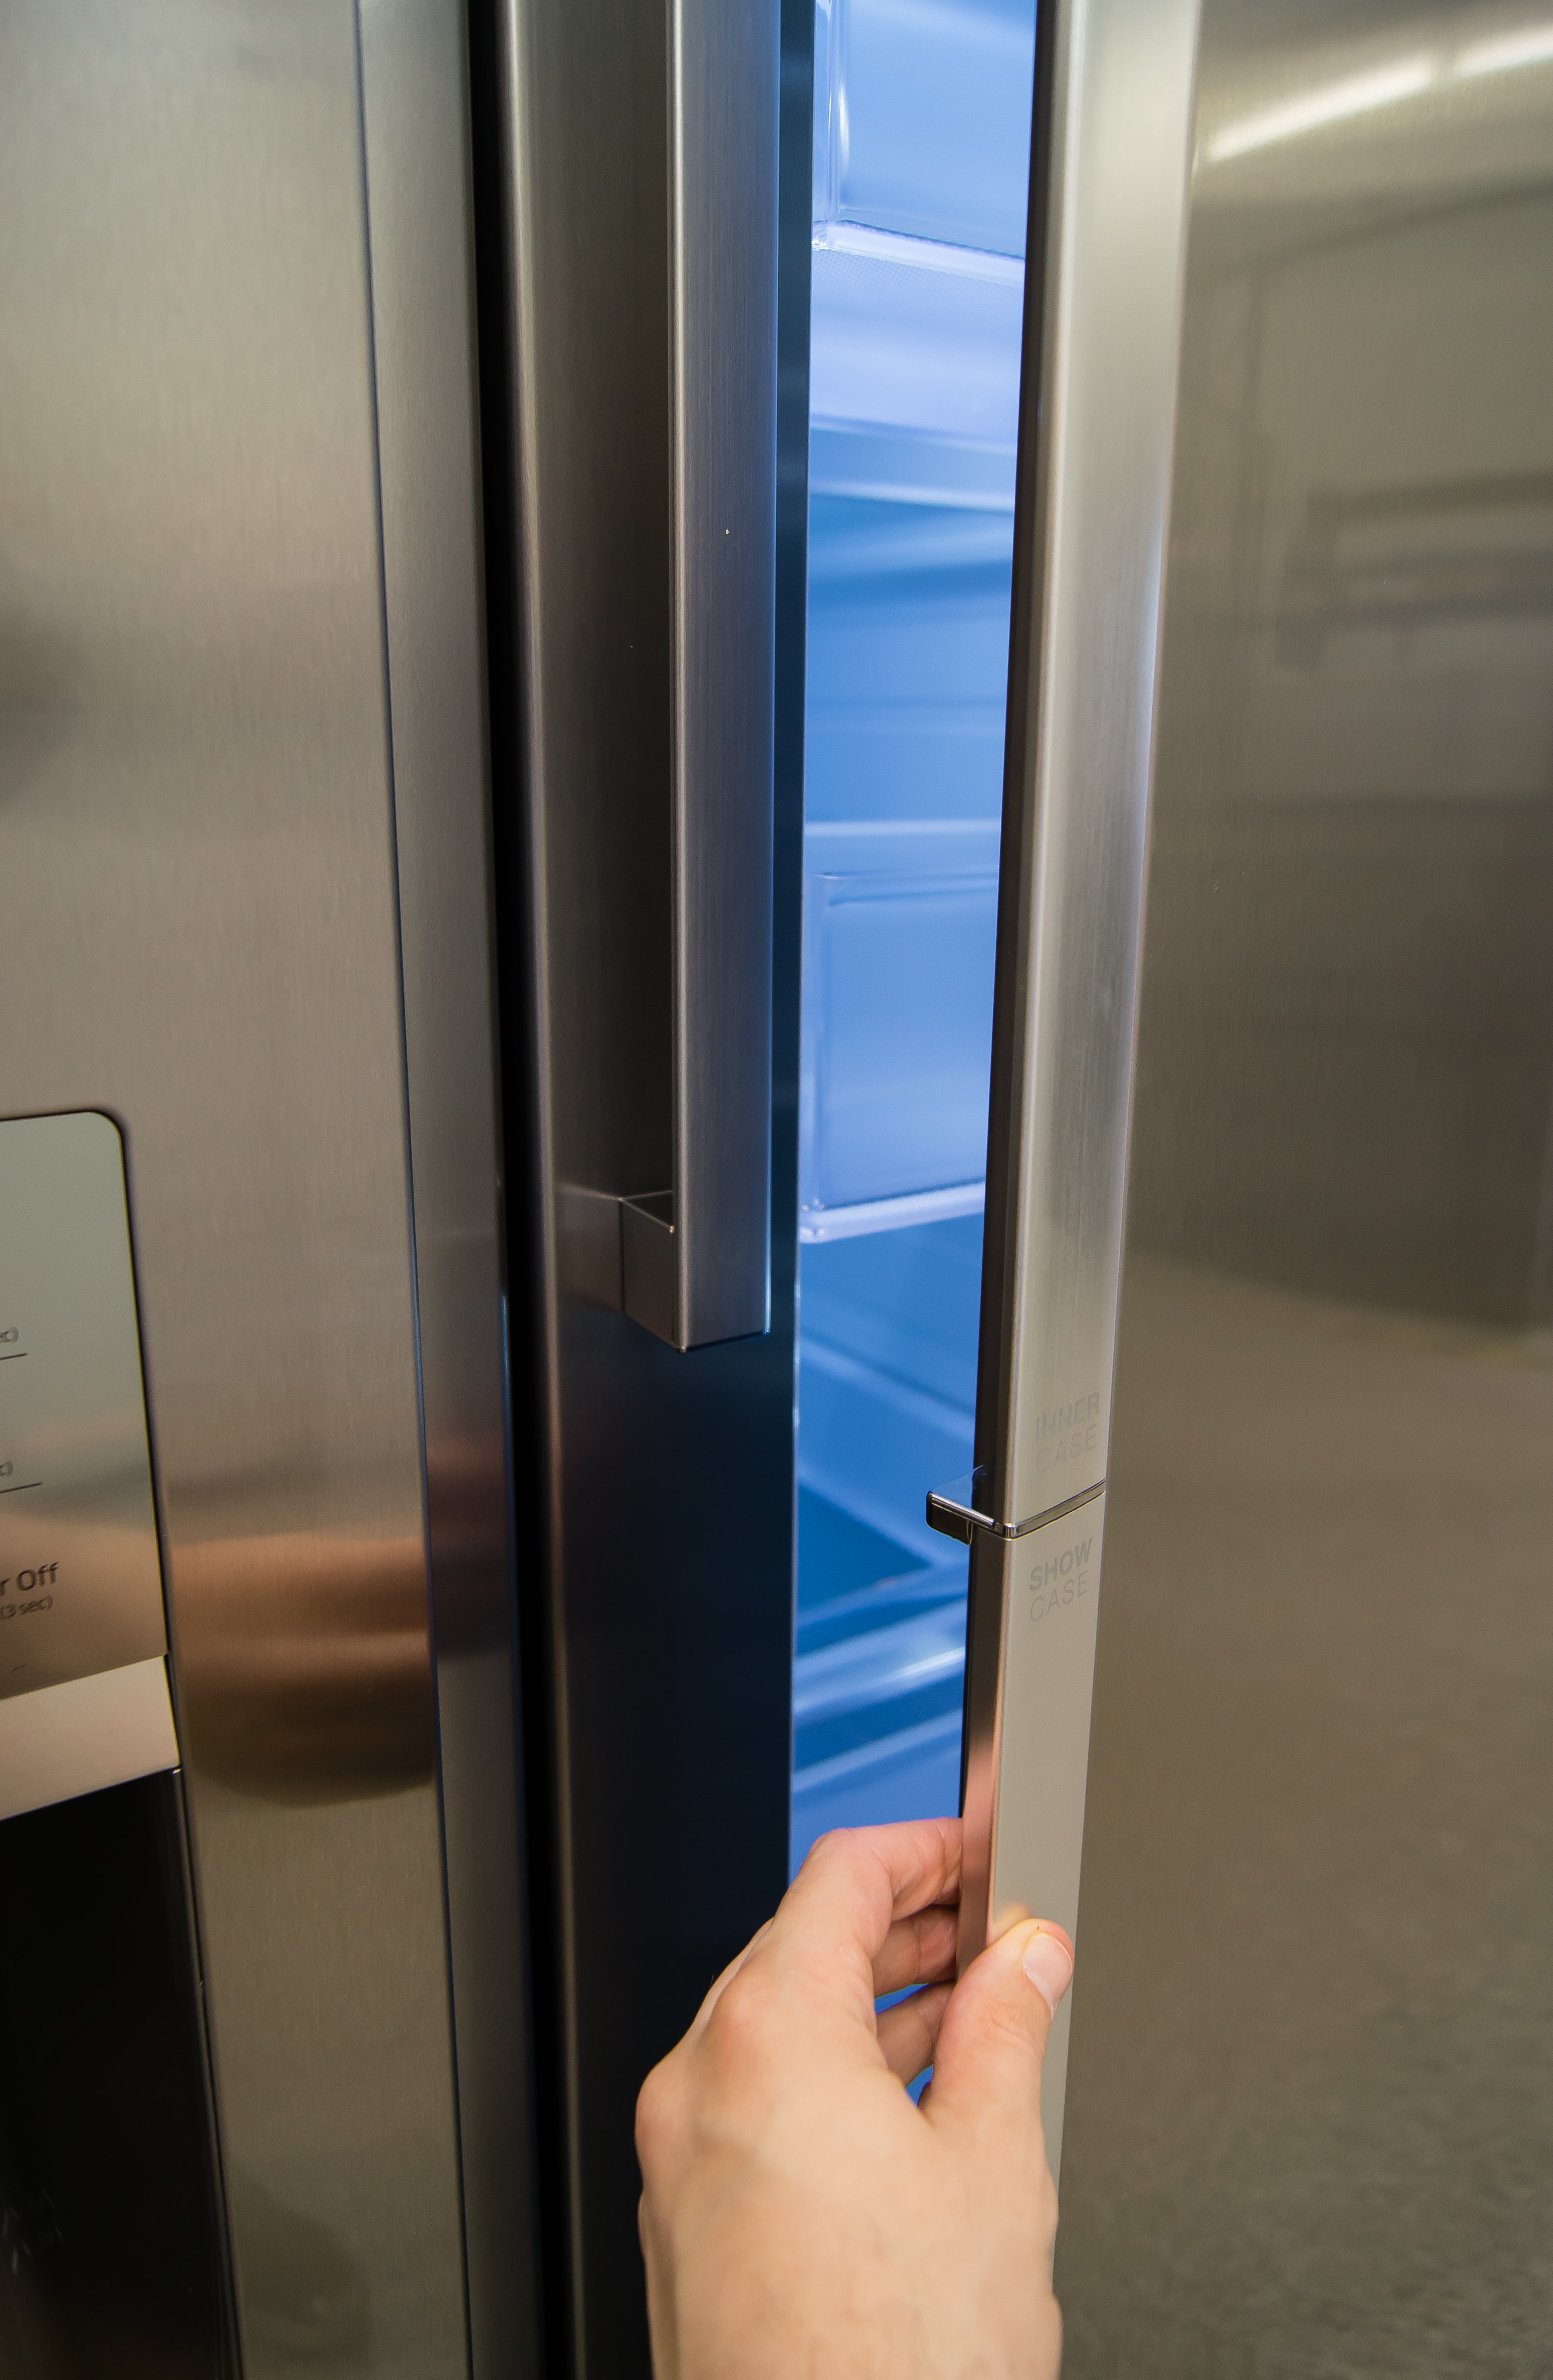 Door-in-door storage is accessed by pulling on the lower portion of the Samsung RH29H9000SR Food Showcase's divided fridge door.